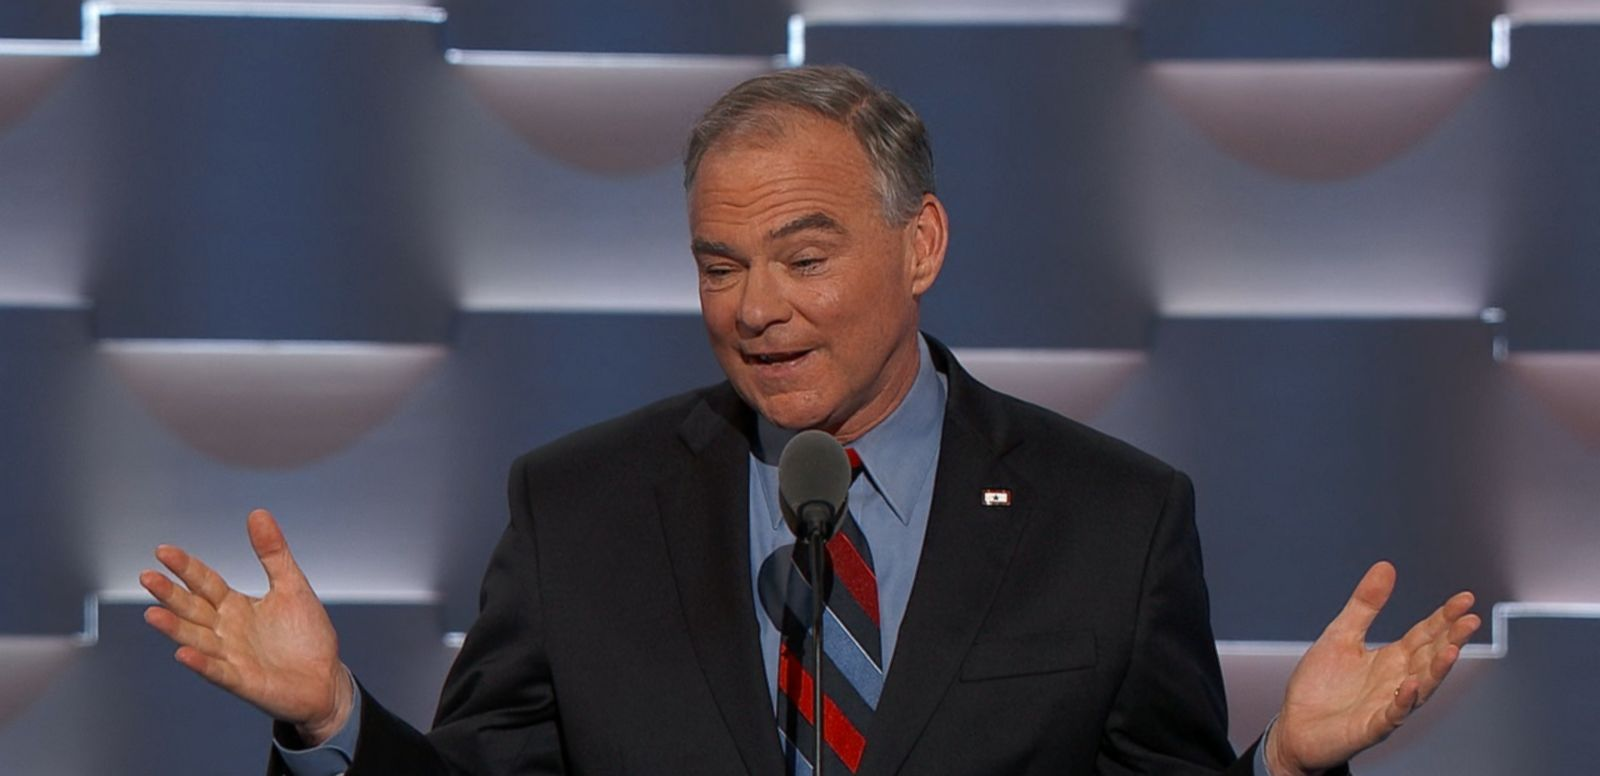 Democratic vice presidential candidate, Sen. Tim Kaine, flexed his dad-joke muscles during the Democratic National Convention.